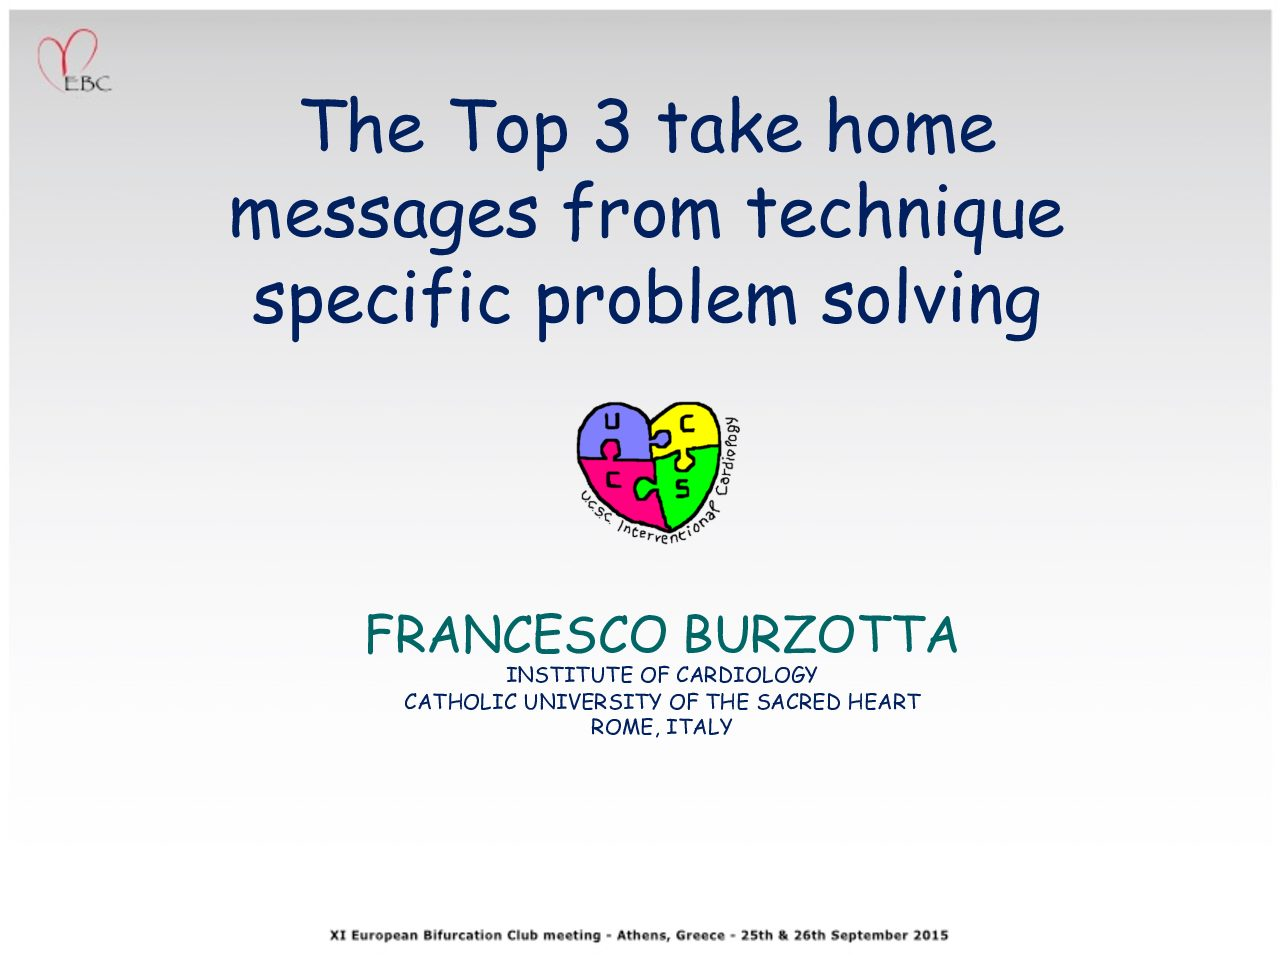 The Top 3 take home messages from technique specific problem solving